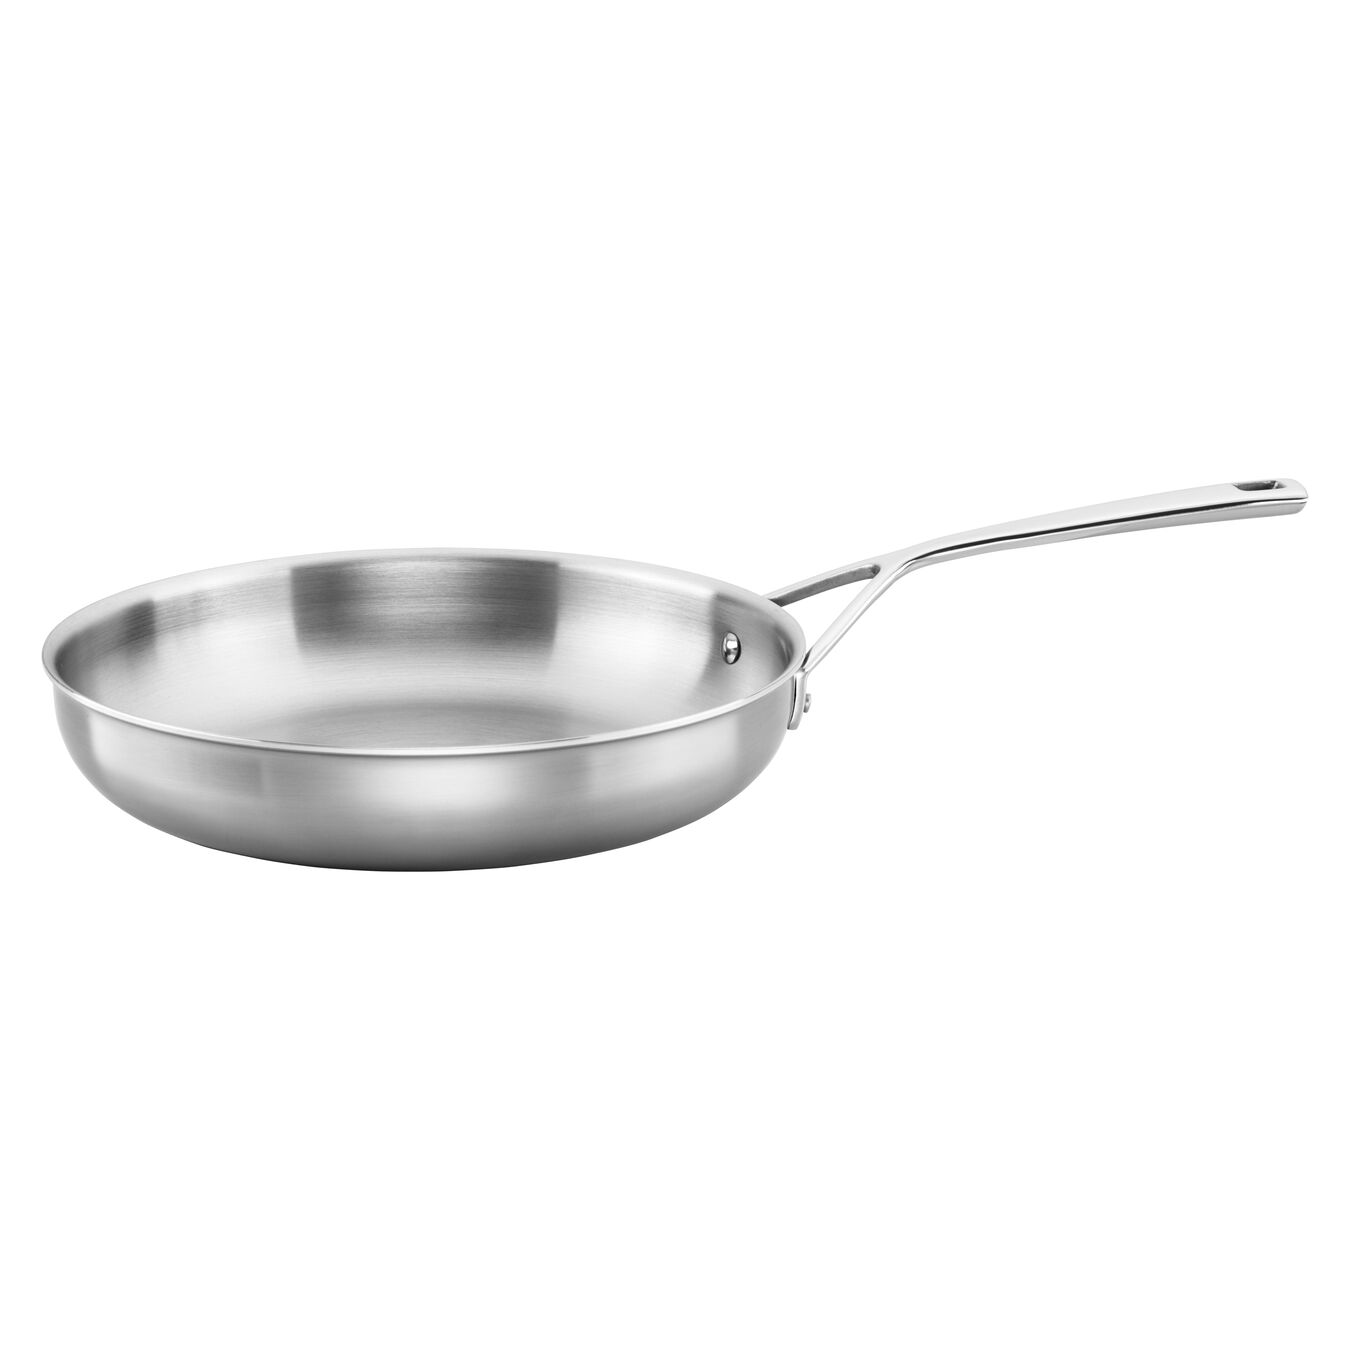 Stainless Steel 11-inch Fry Pan,,large 1